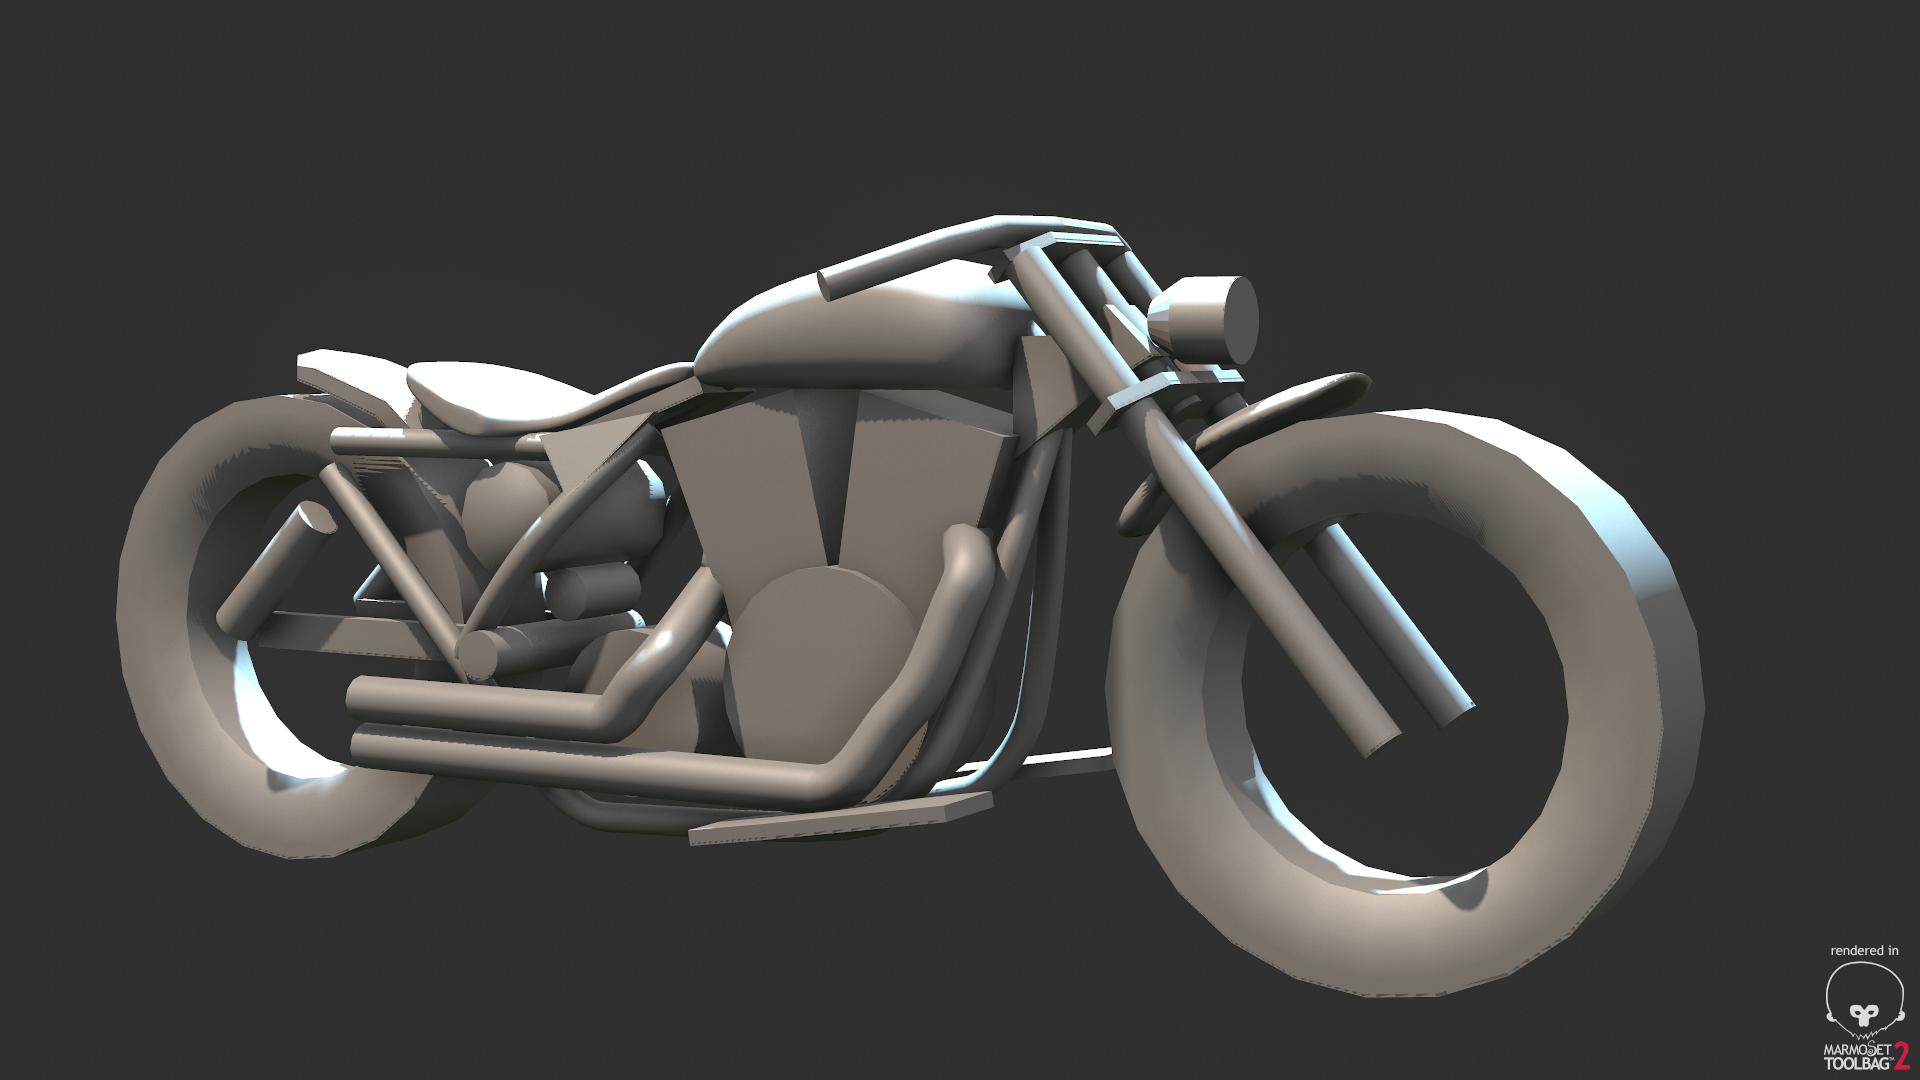 wip_bobber_blockout_01_by_bit_winchester-d7nuq46.png